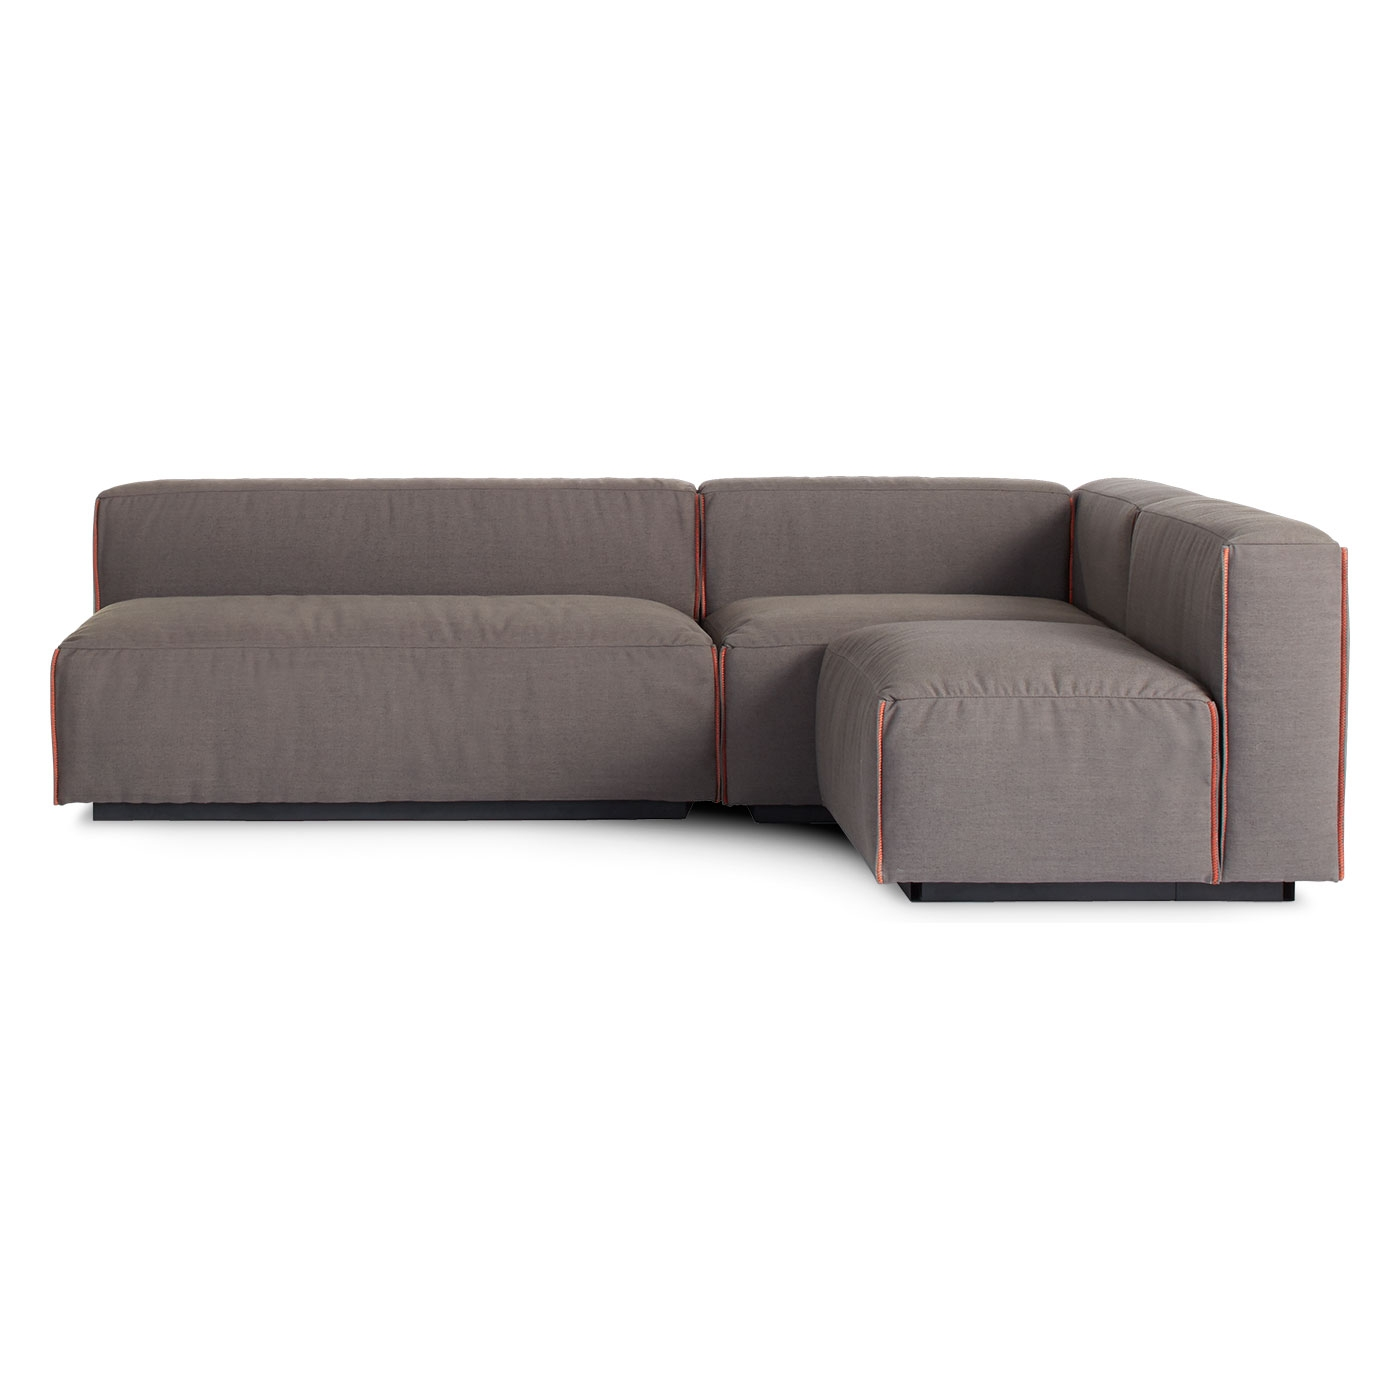 Cleon Medium Sectional Armless Sectional Blu Dot Intended For Armless Sectional Sofas (#8 of 12)